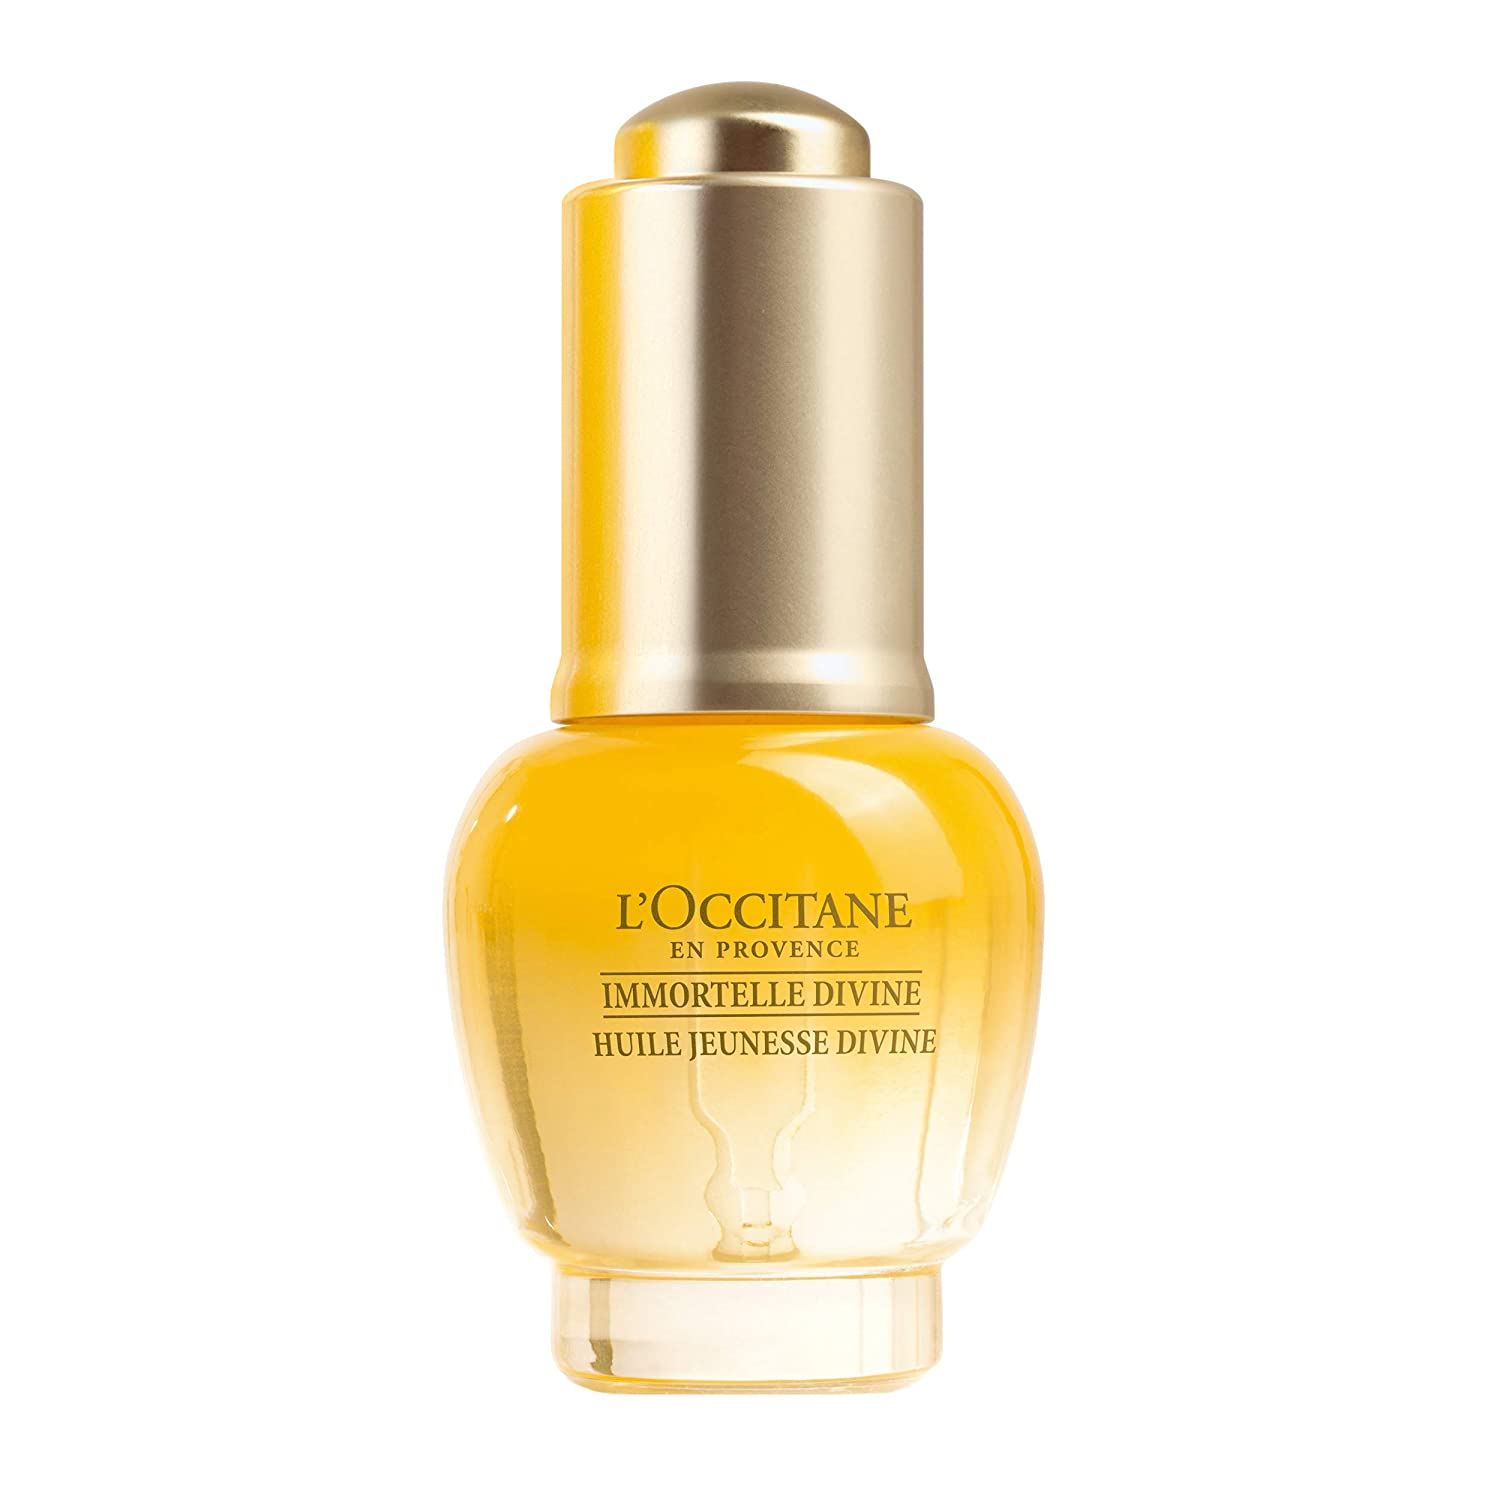 L'Occitane Anti-Aging Divine Youth Oil for a Youthful & Radiant Glow